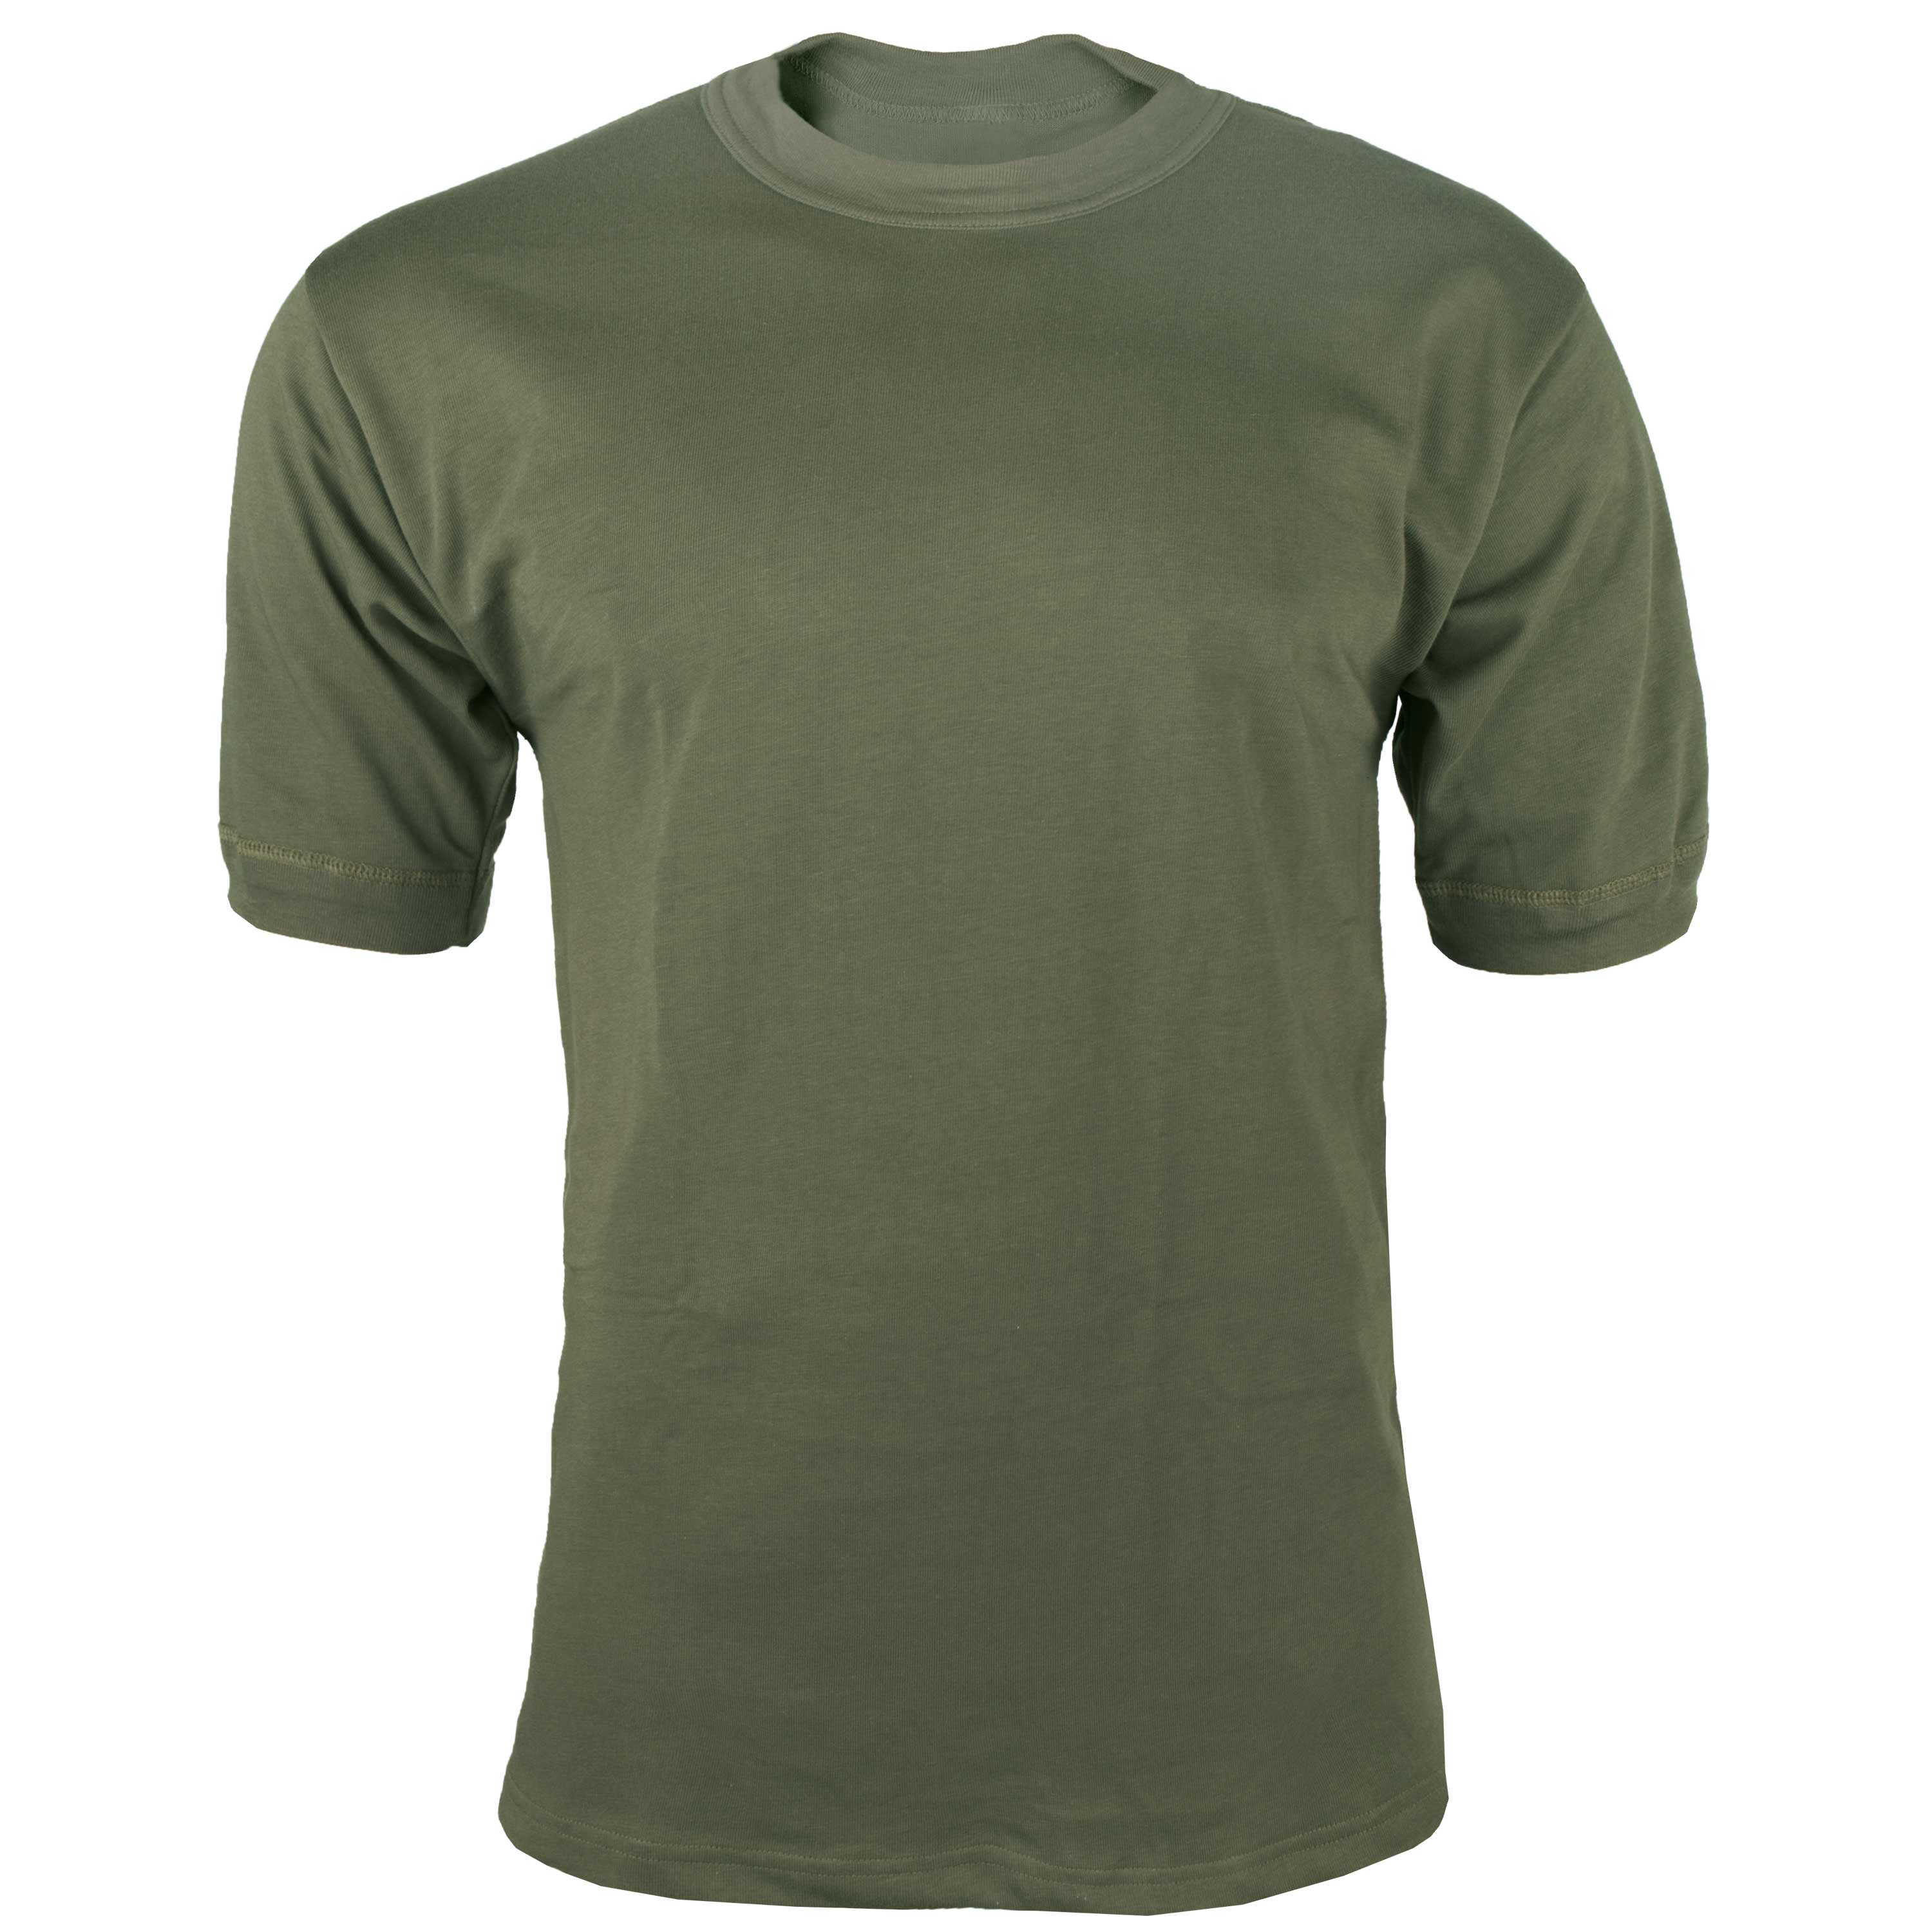 German Army Short Sleeve Under Shirt olive